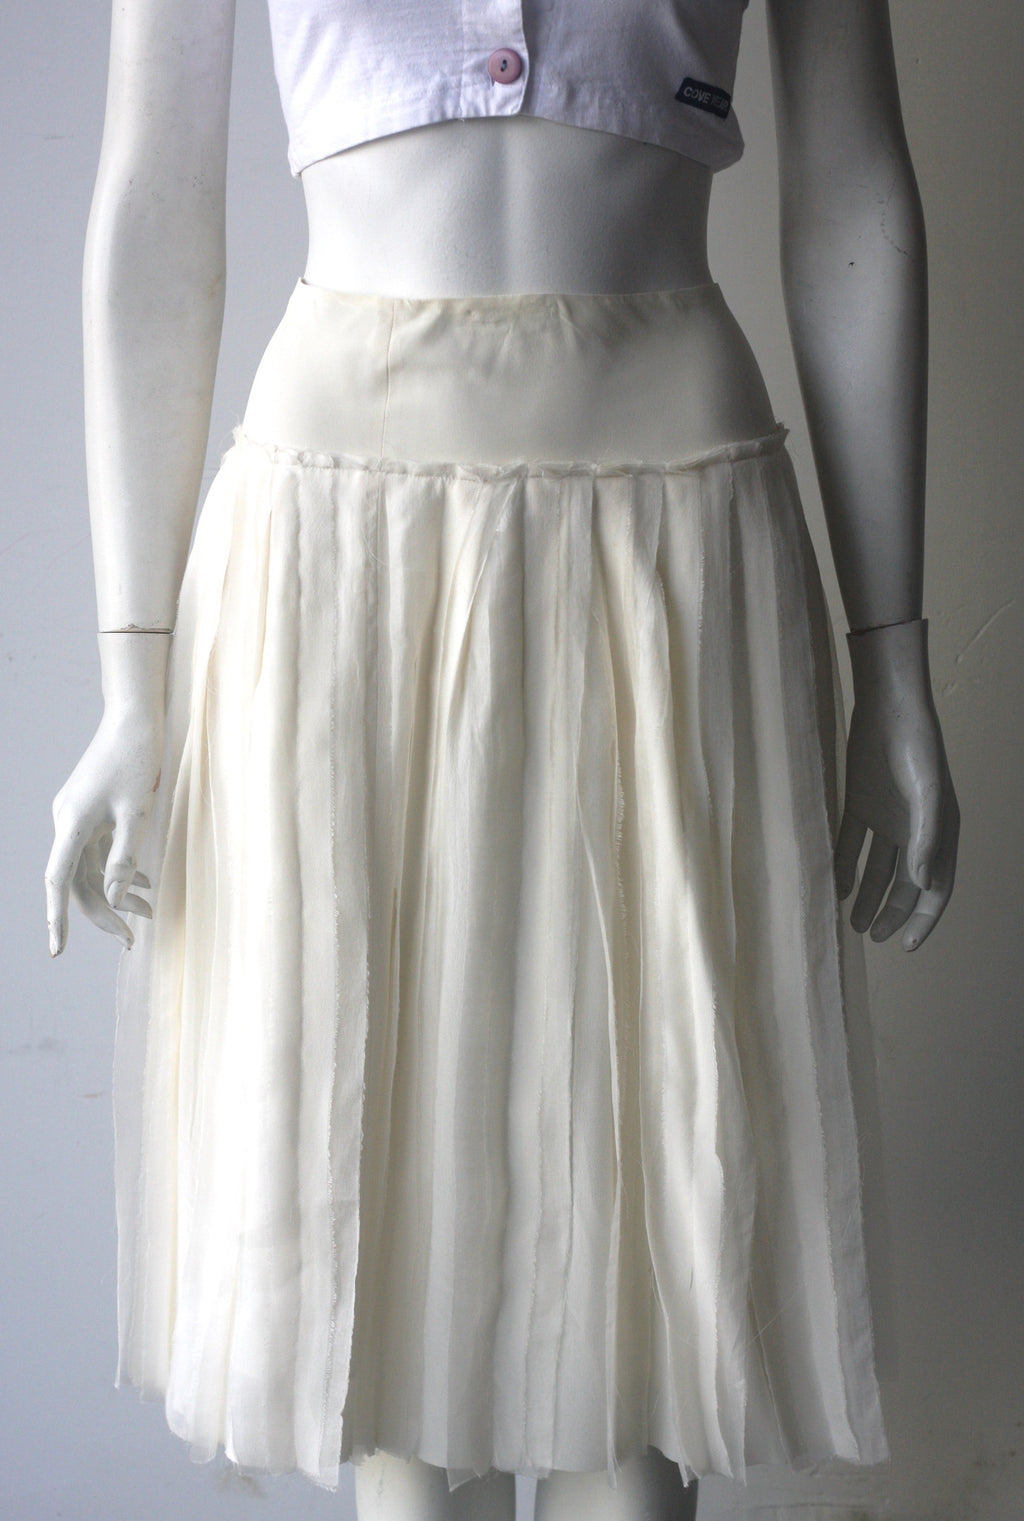 DKNY Cream Pleated Silk A-Line Skirt - Joyce's Closet  - 1